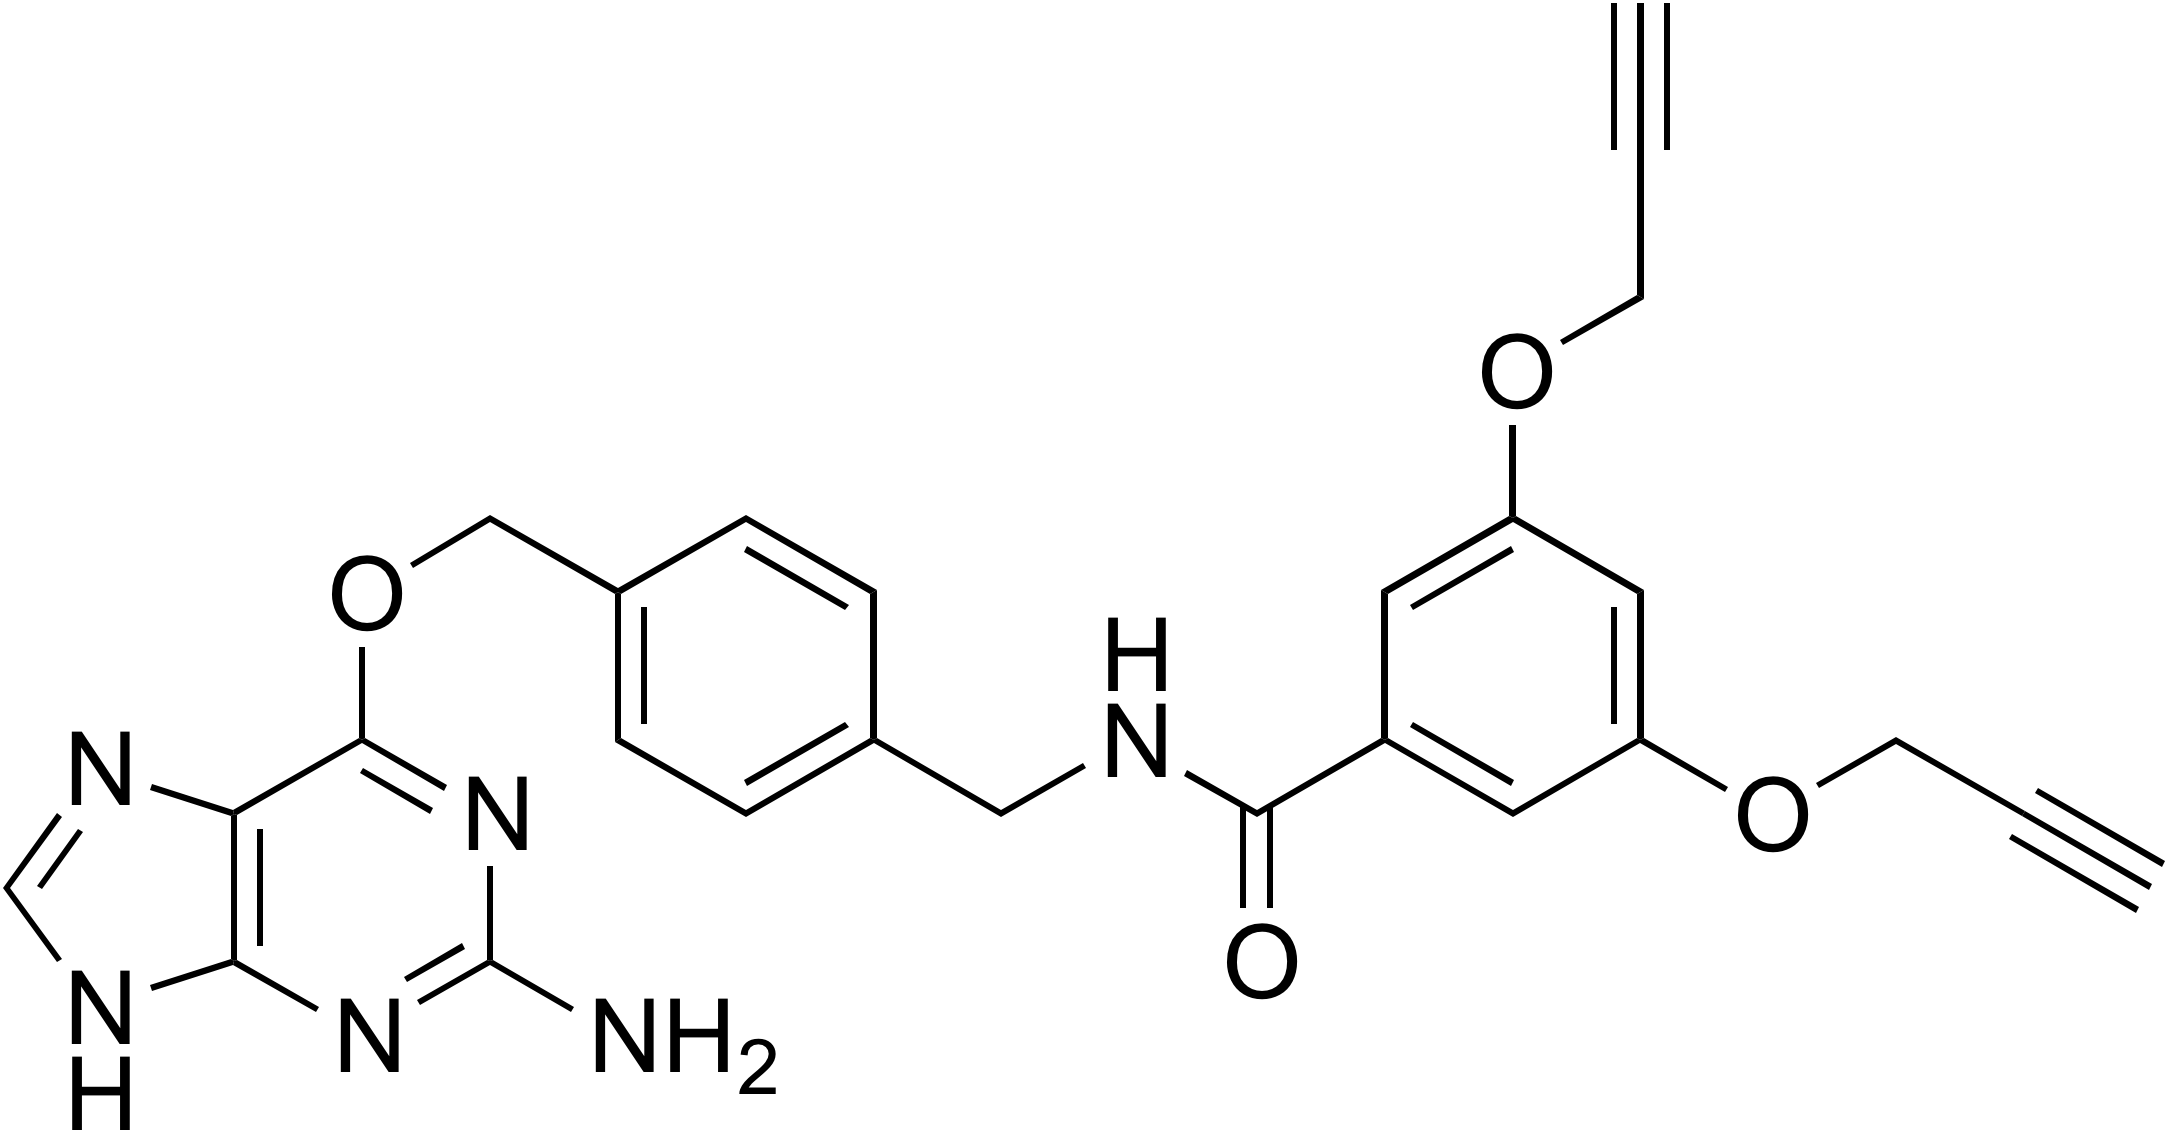 N-(4-((2-Amino-9H-purin-6-yloxy)methyl)benzyl)-3,5-bis(prop-2-ynyloxy)benzamide